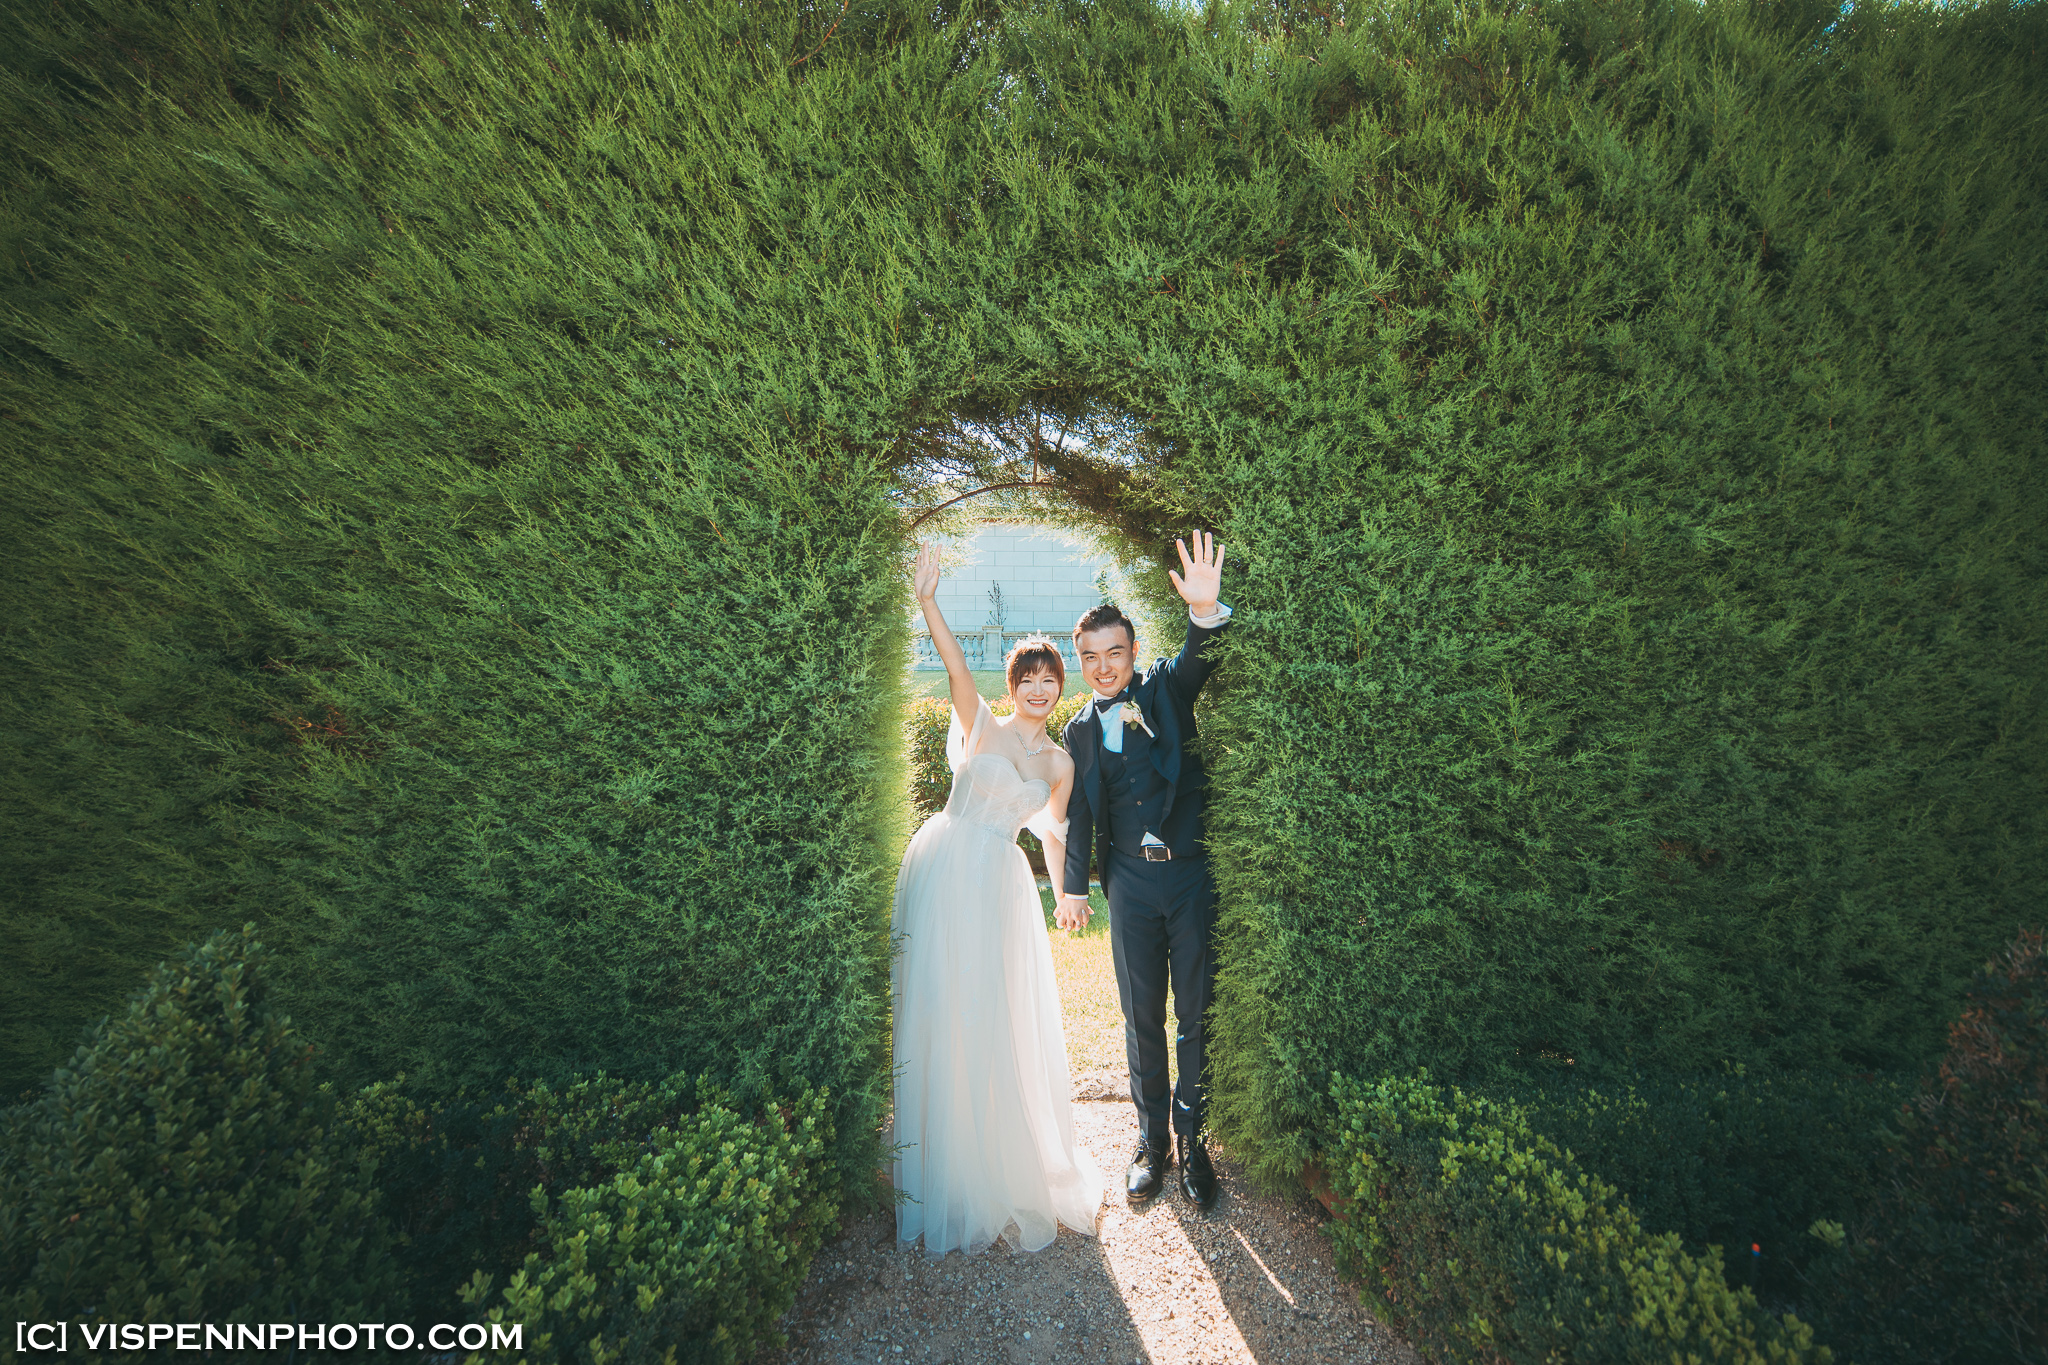 WEDDING DAY Photography Melbourne 5D5 5152